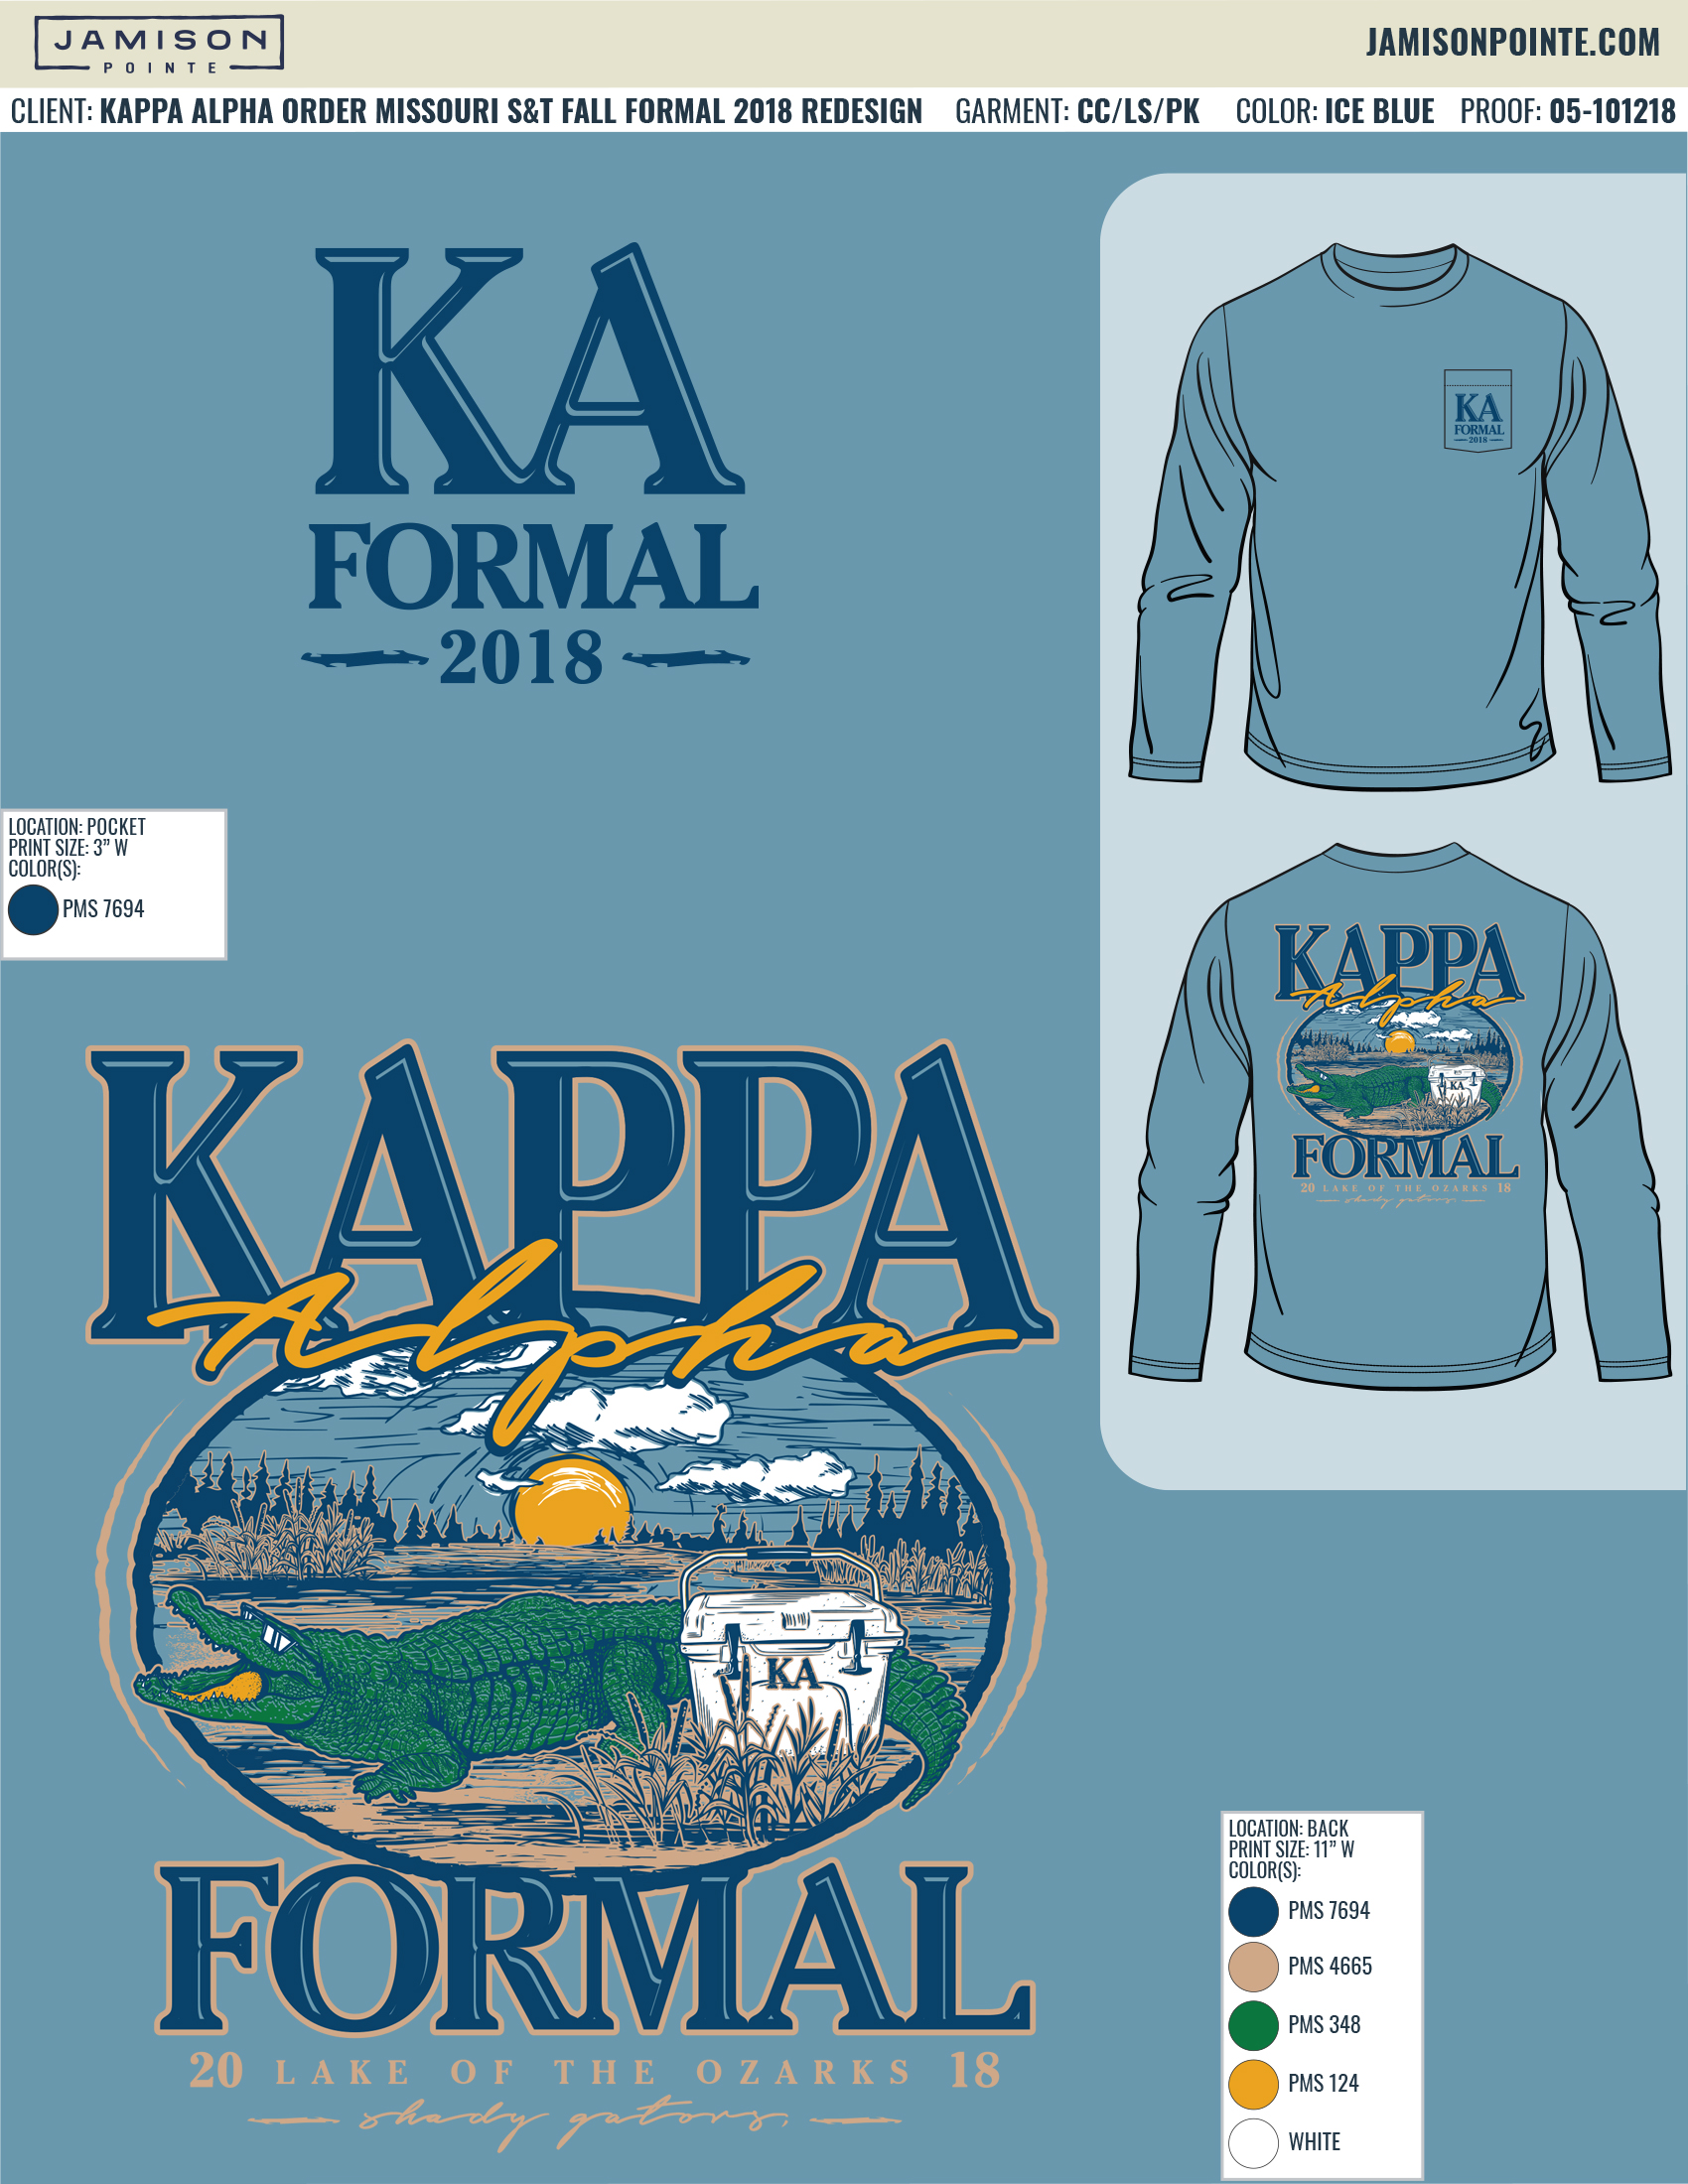 05-101218 Kappa Alpha Order Missouri S&T Fall Formal 2018 Redesign.jpg